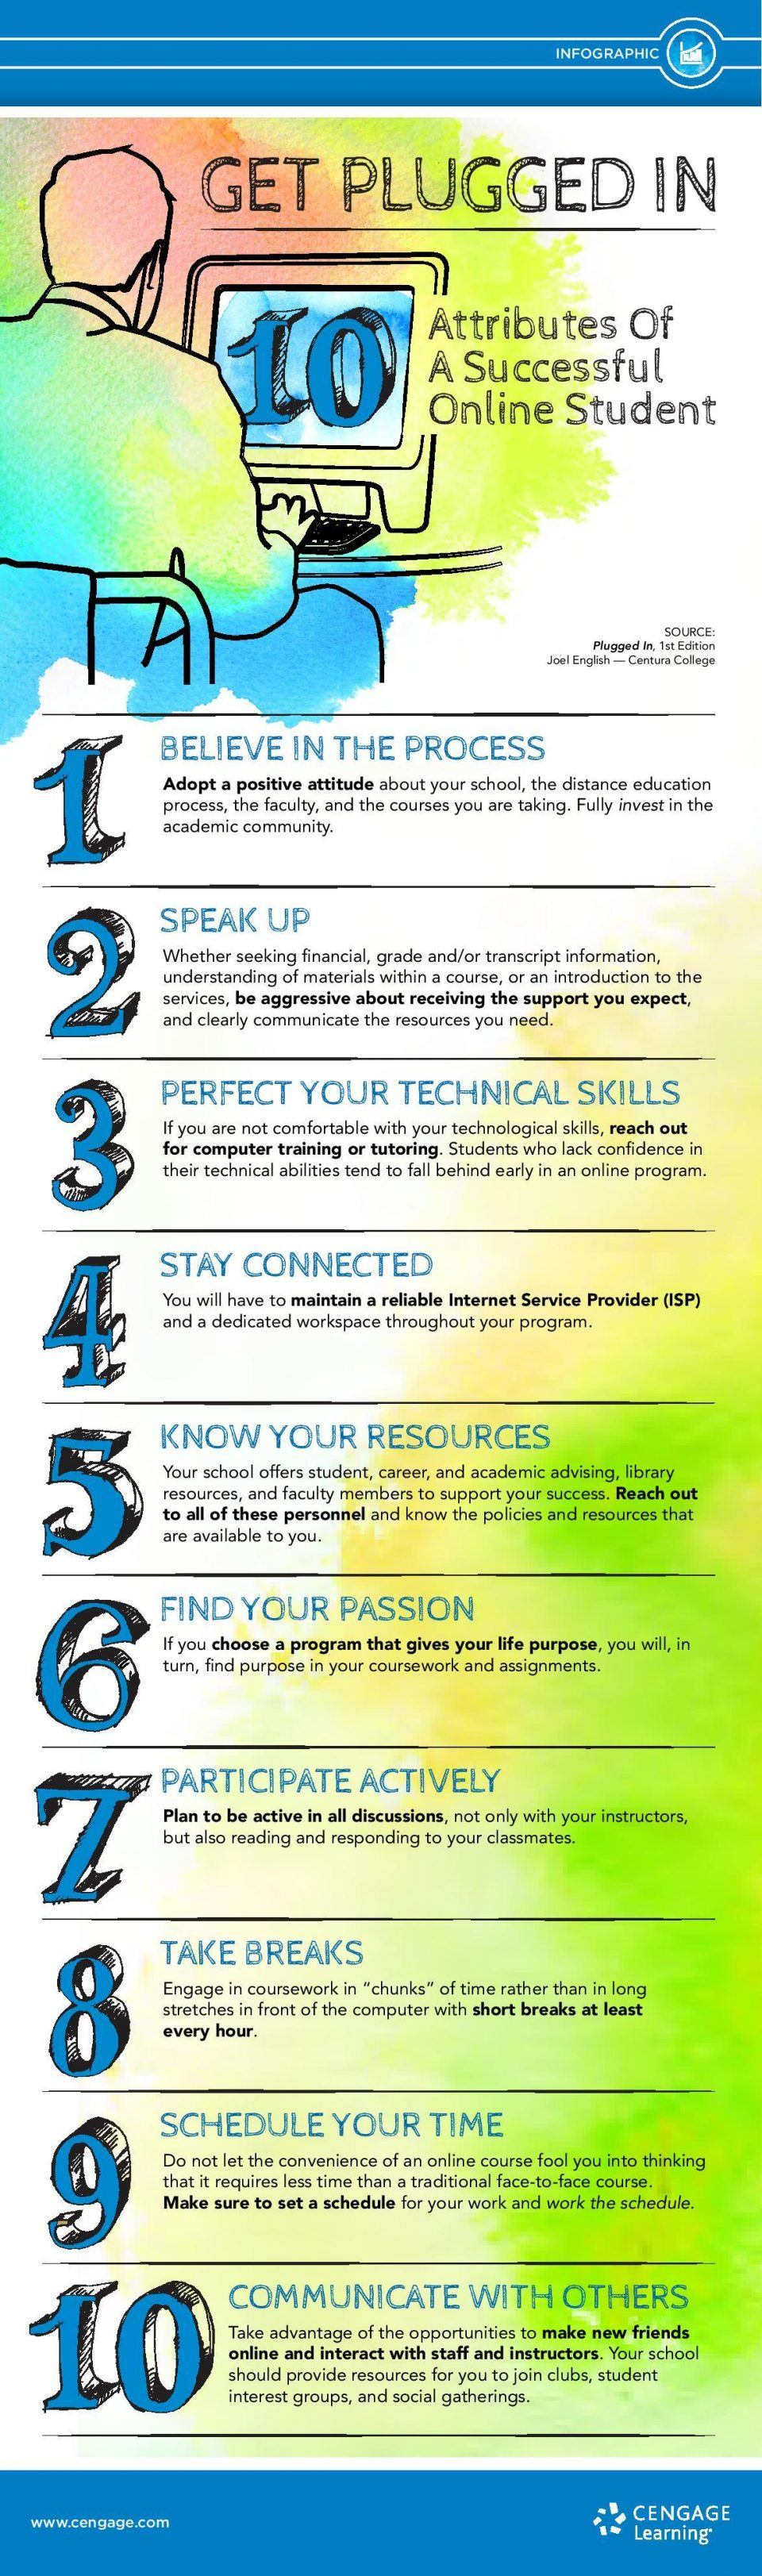 10 Attributes of a Successful Online Student Infographic